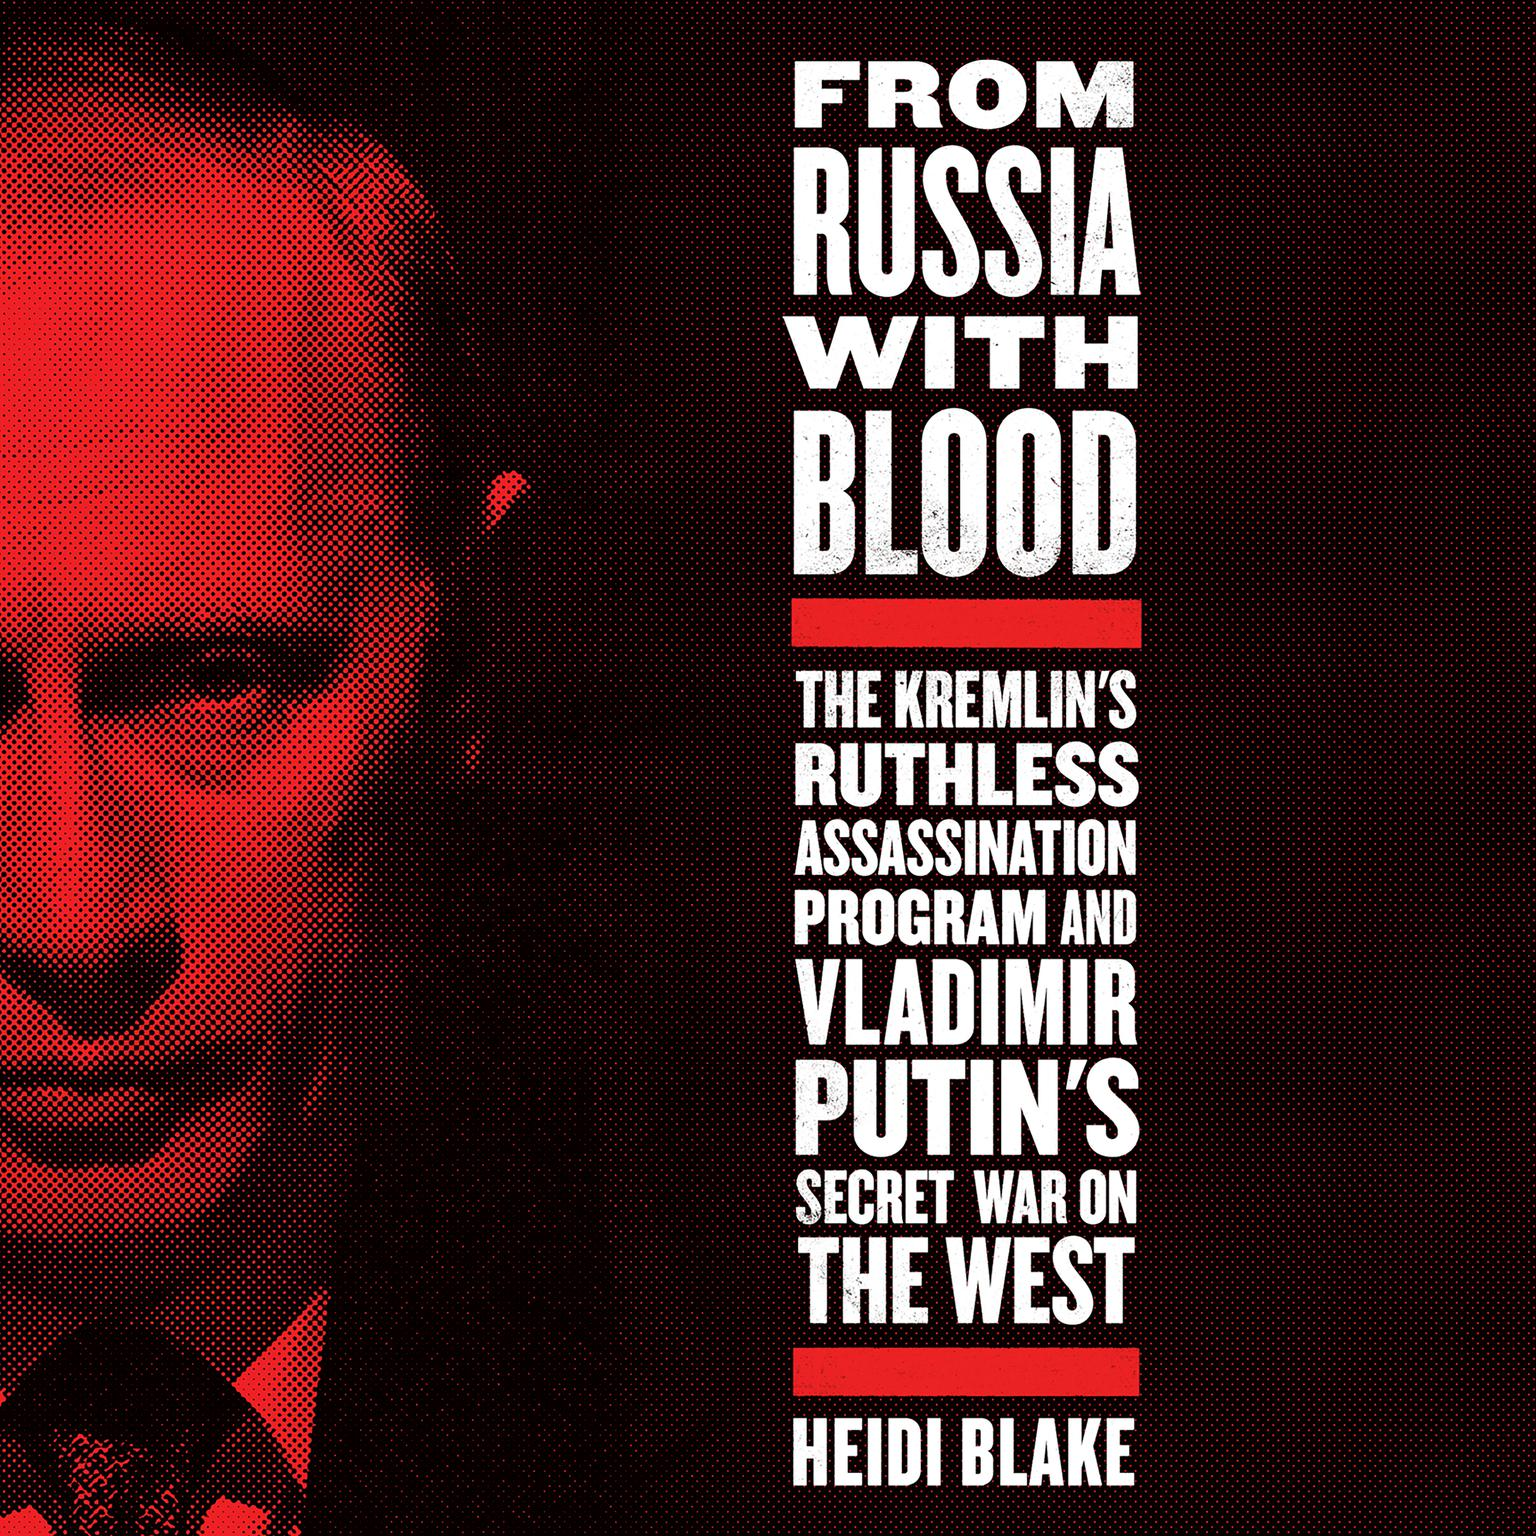 From Russia with Blood: The Kremlins Ruthless Assassination Program and Vladimir Putins Secret War on the West Audiobook, by Heidi Blake